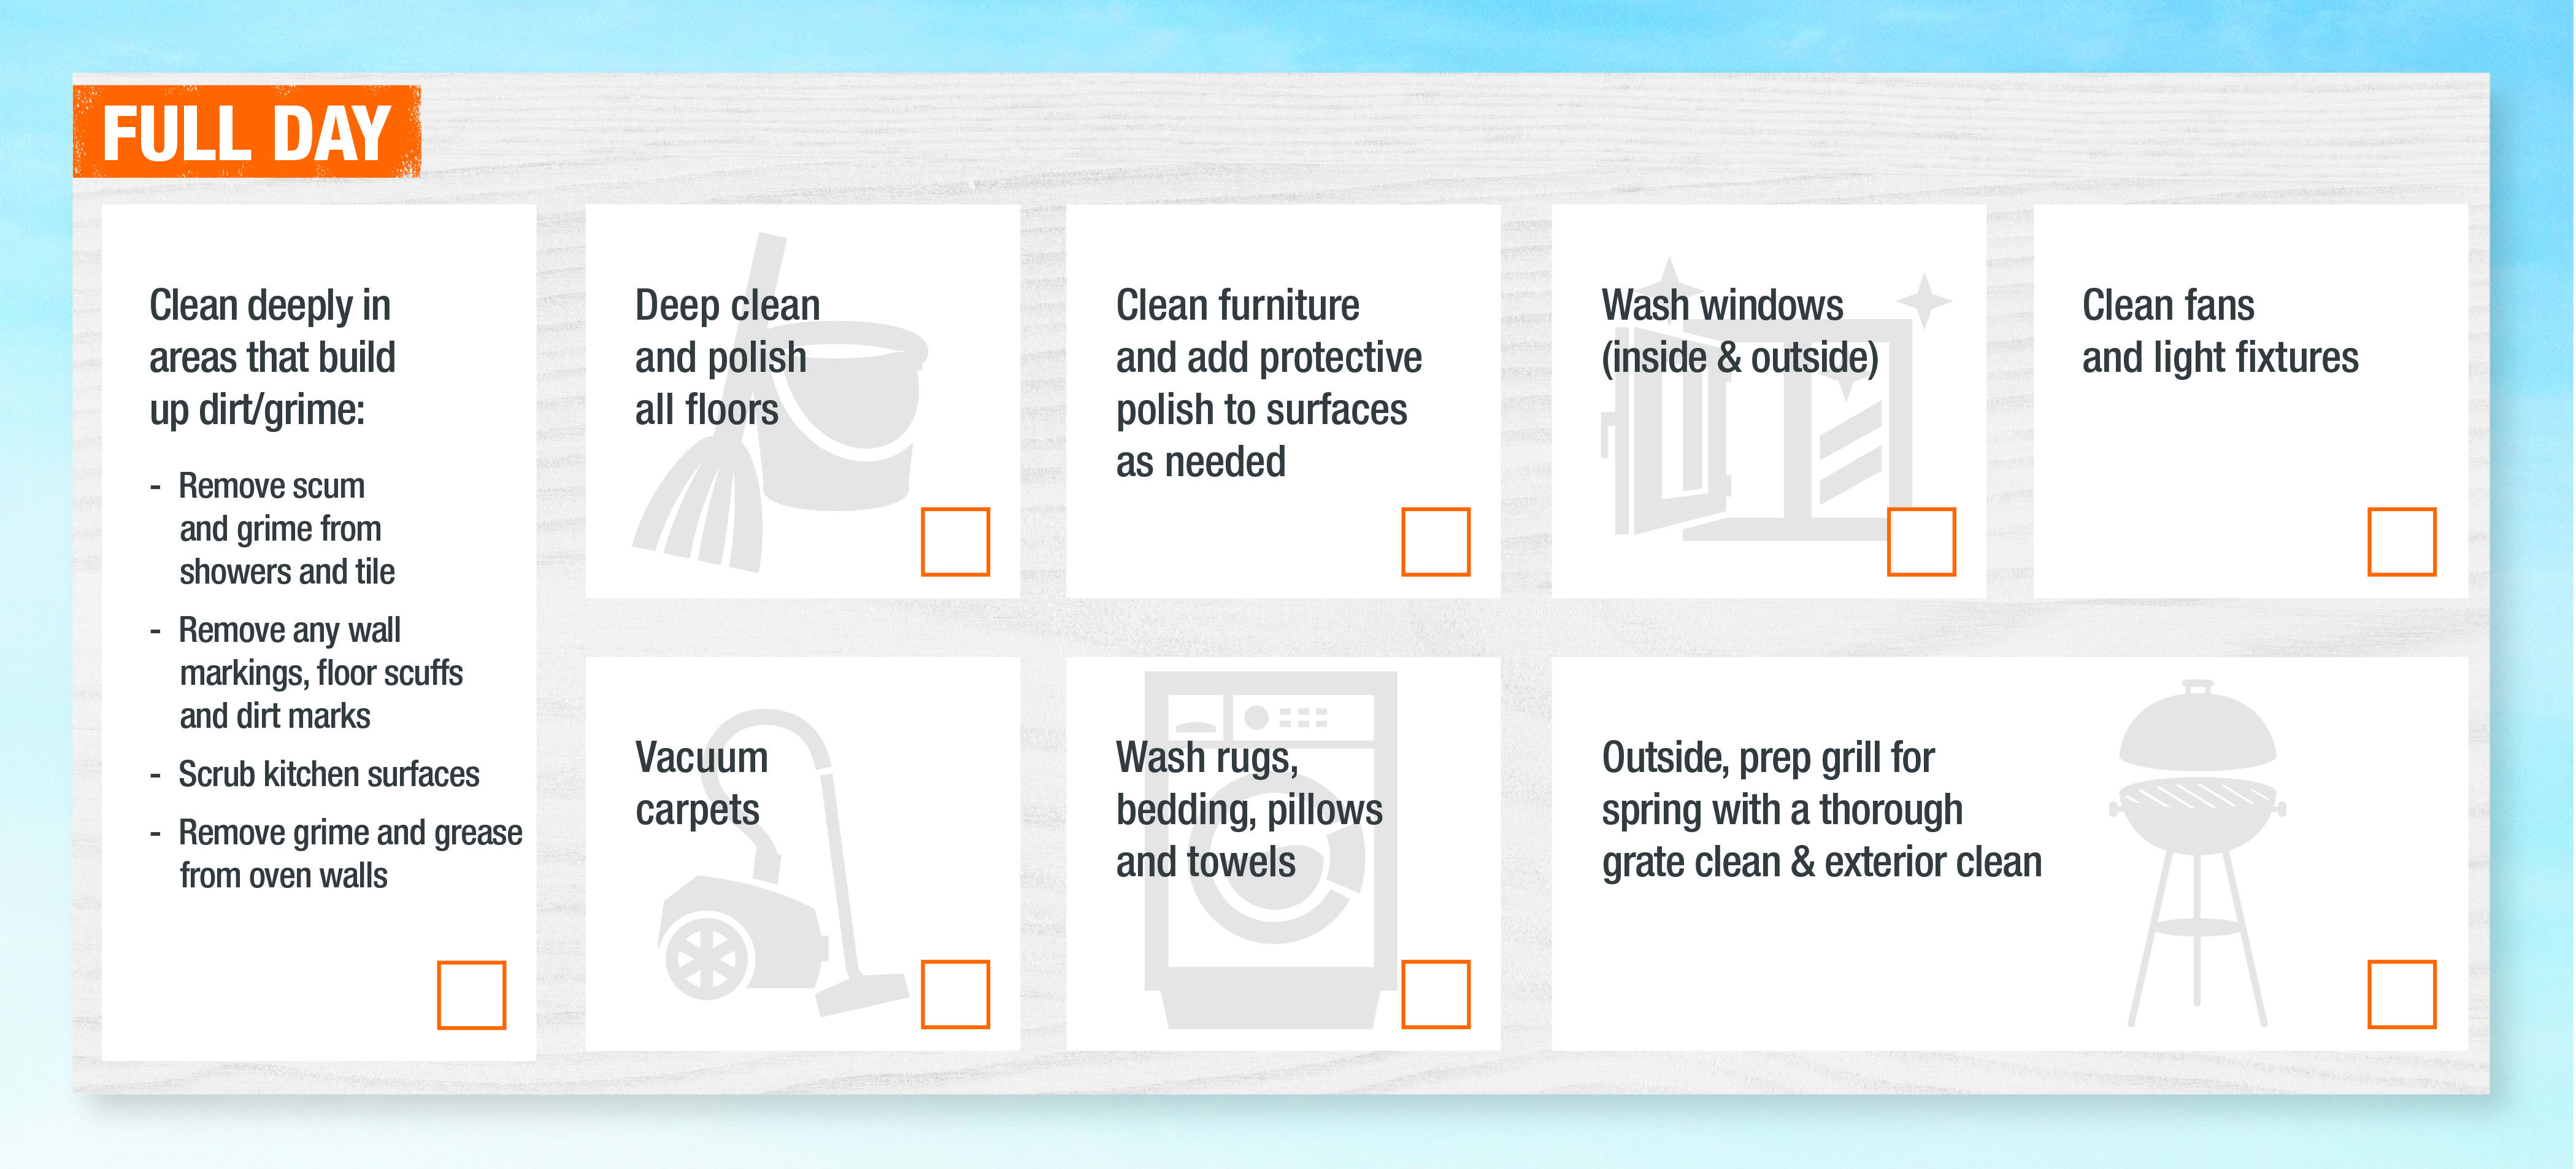 Full day spring cleaning checklist